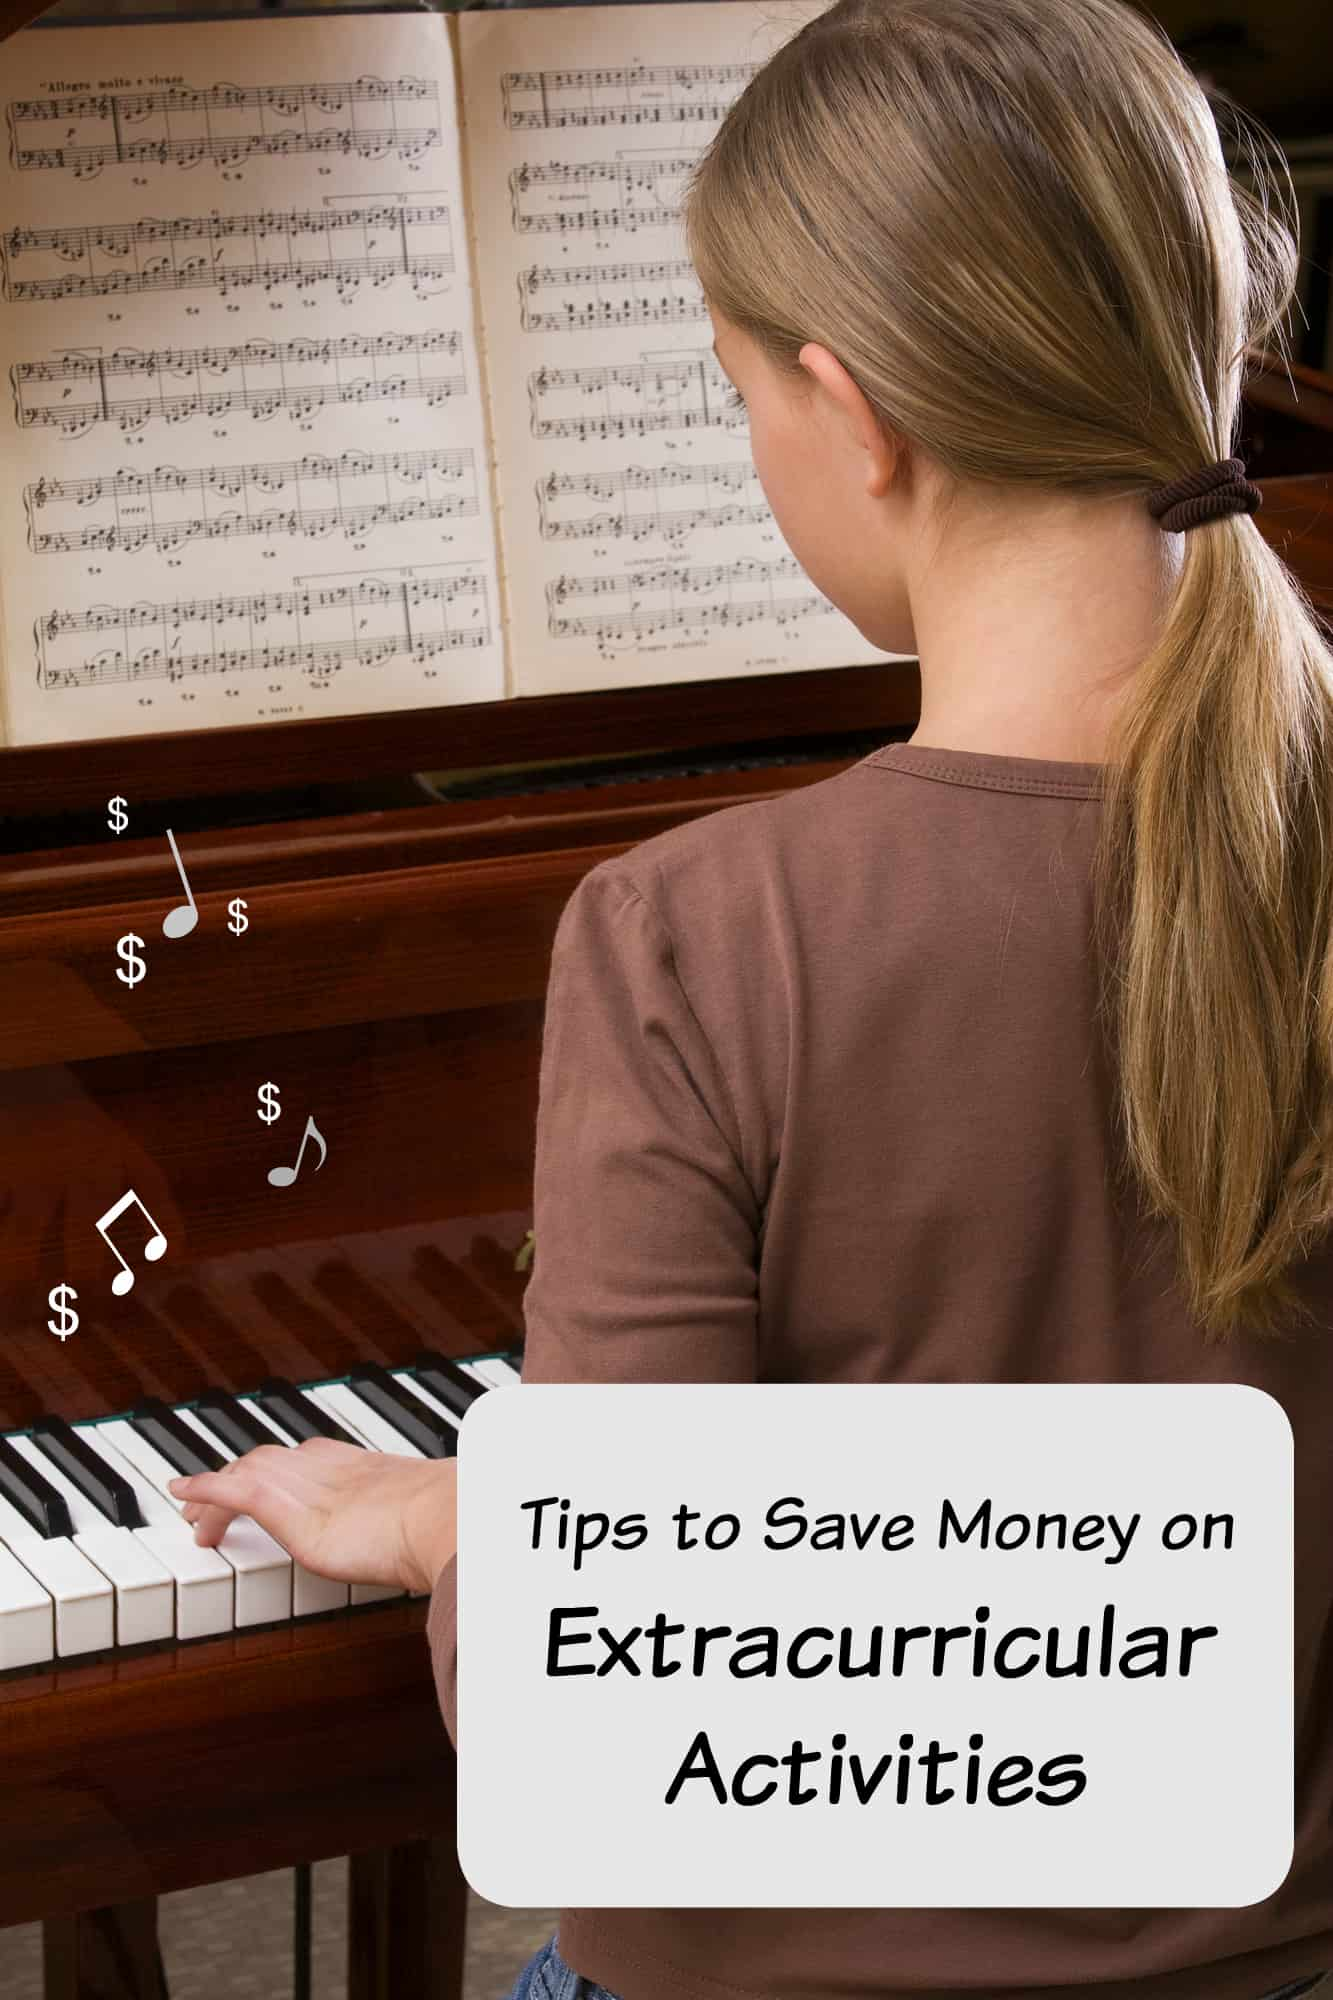 Tips to Save Money on Extracurricular Activities